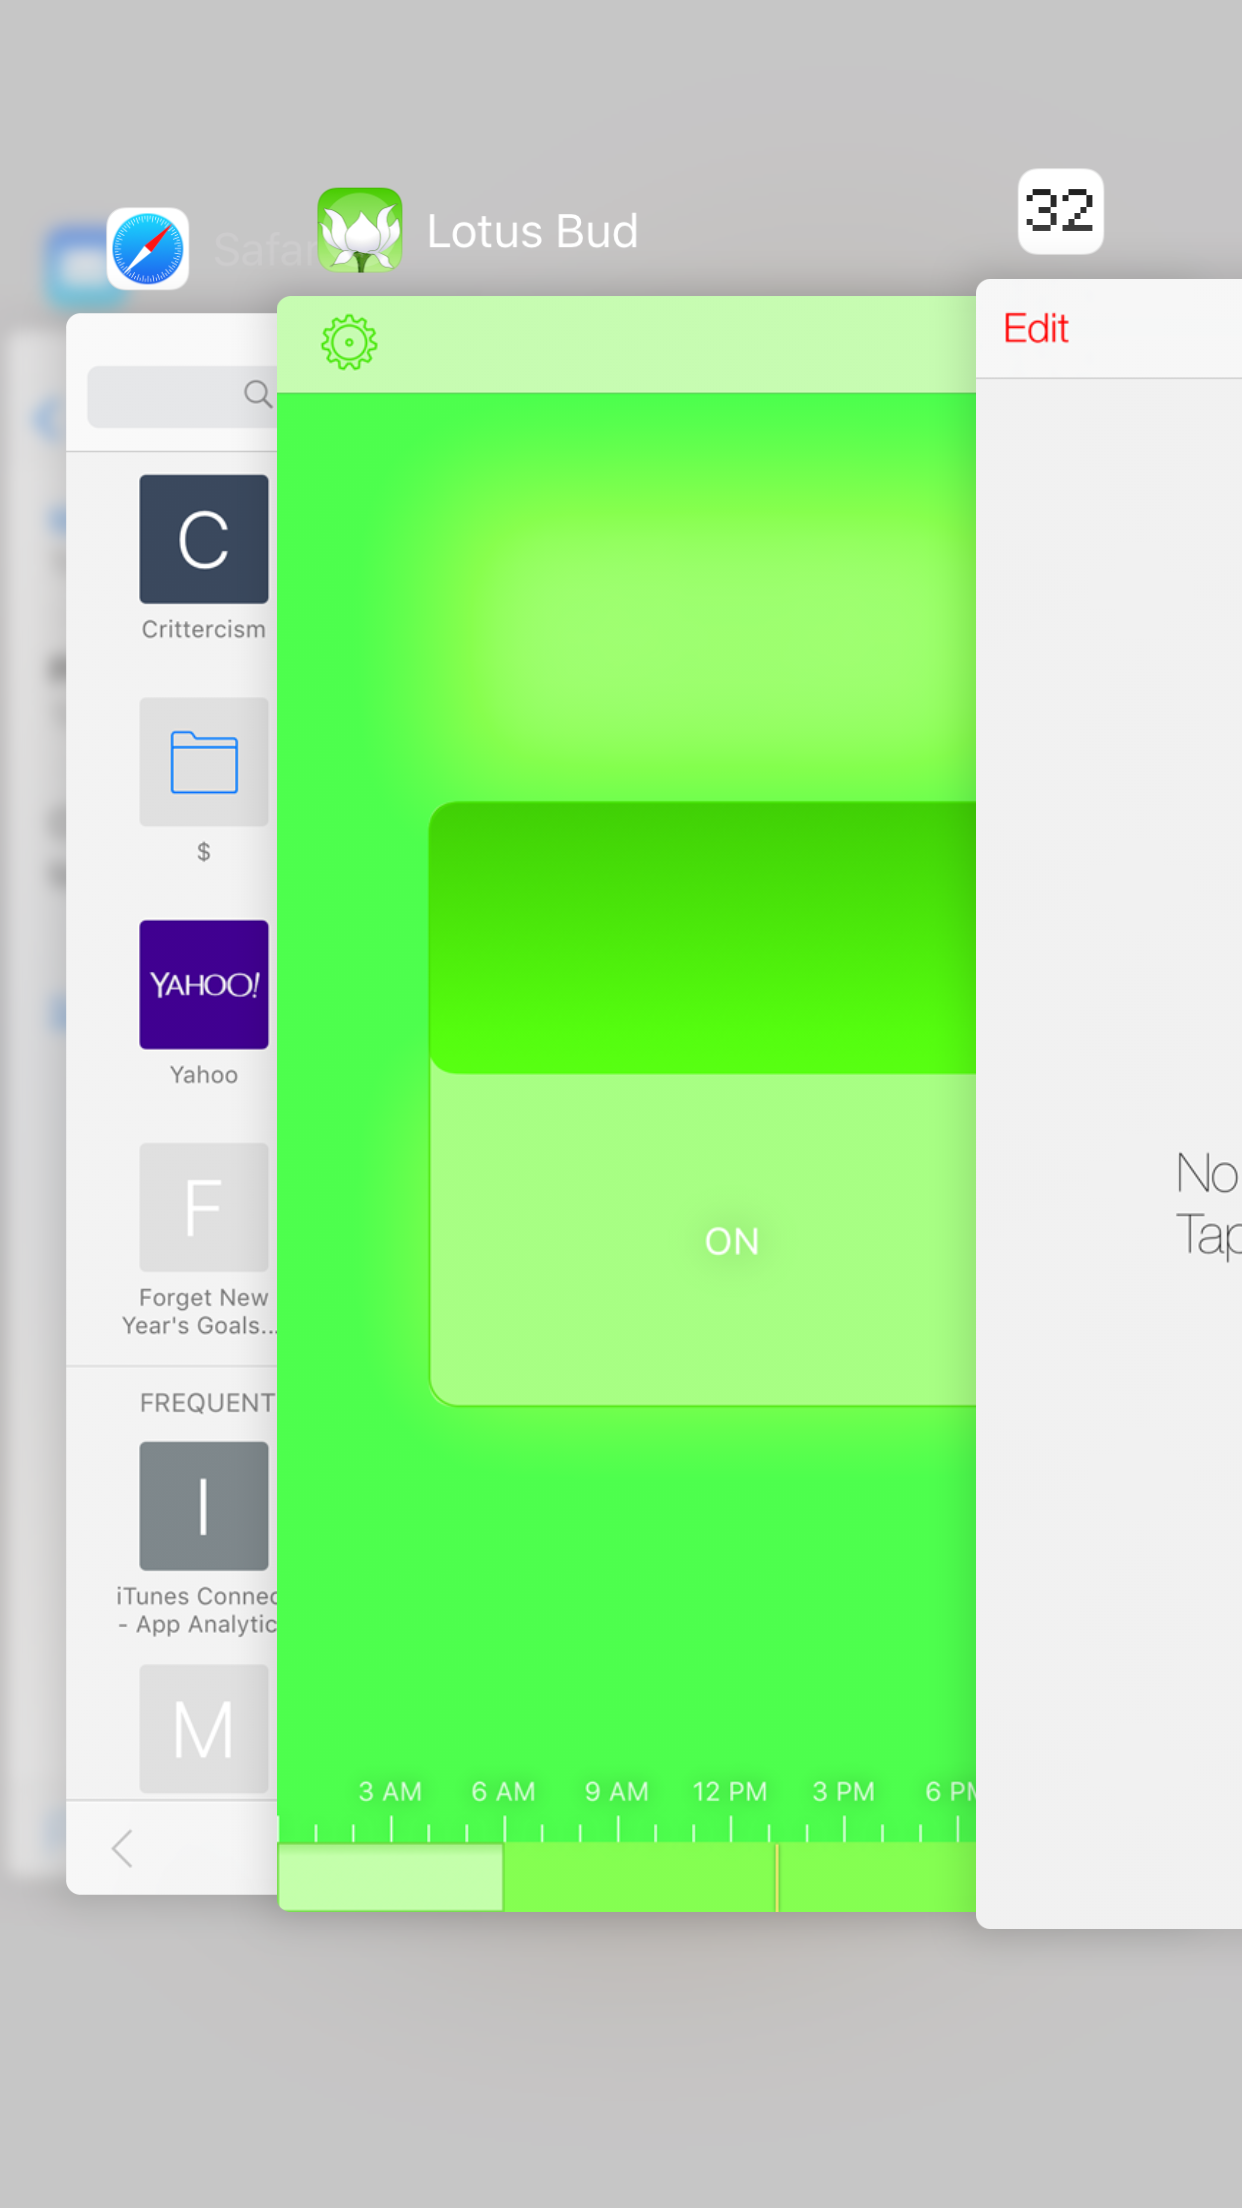 Keep Lotus Bud visible in this app switcher and you should keep getting notifications.